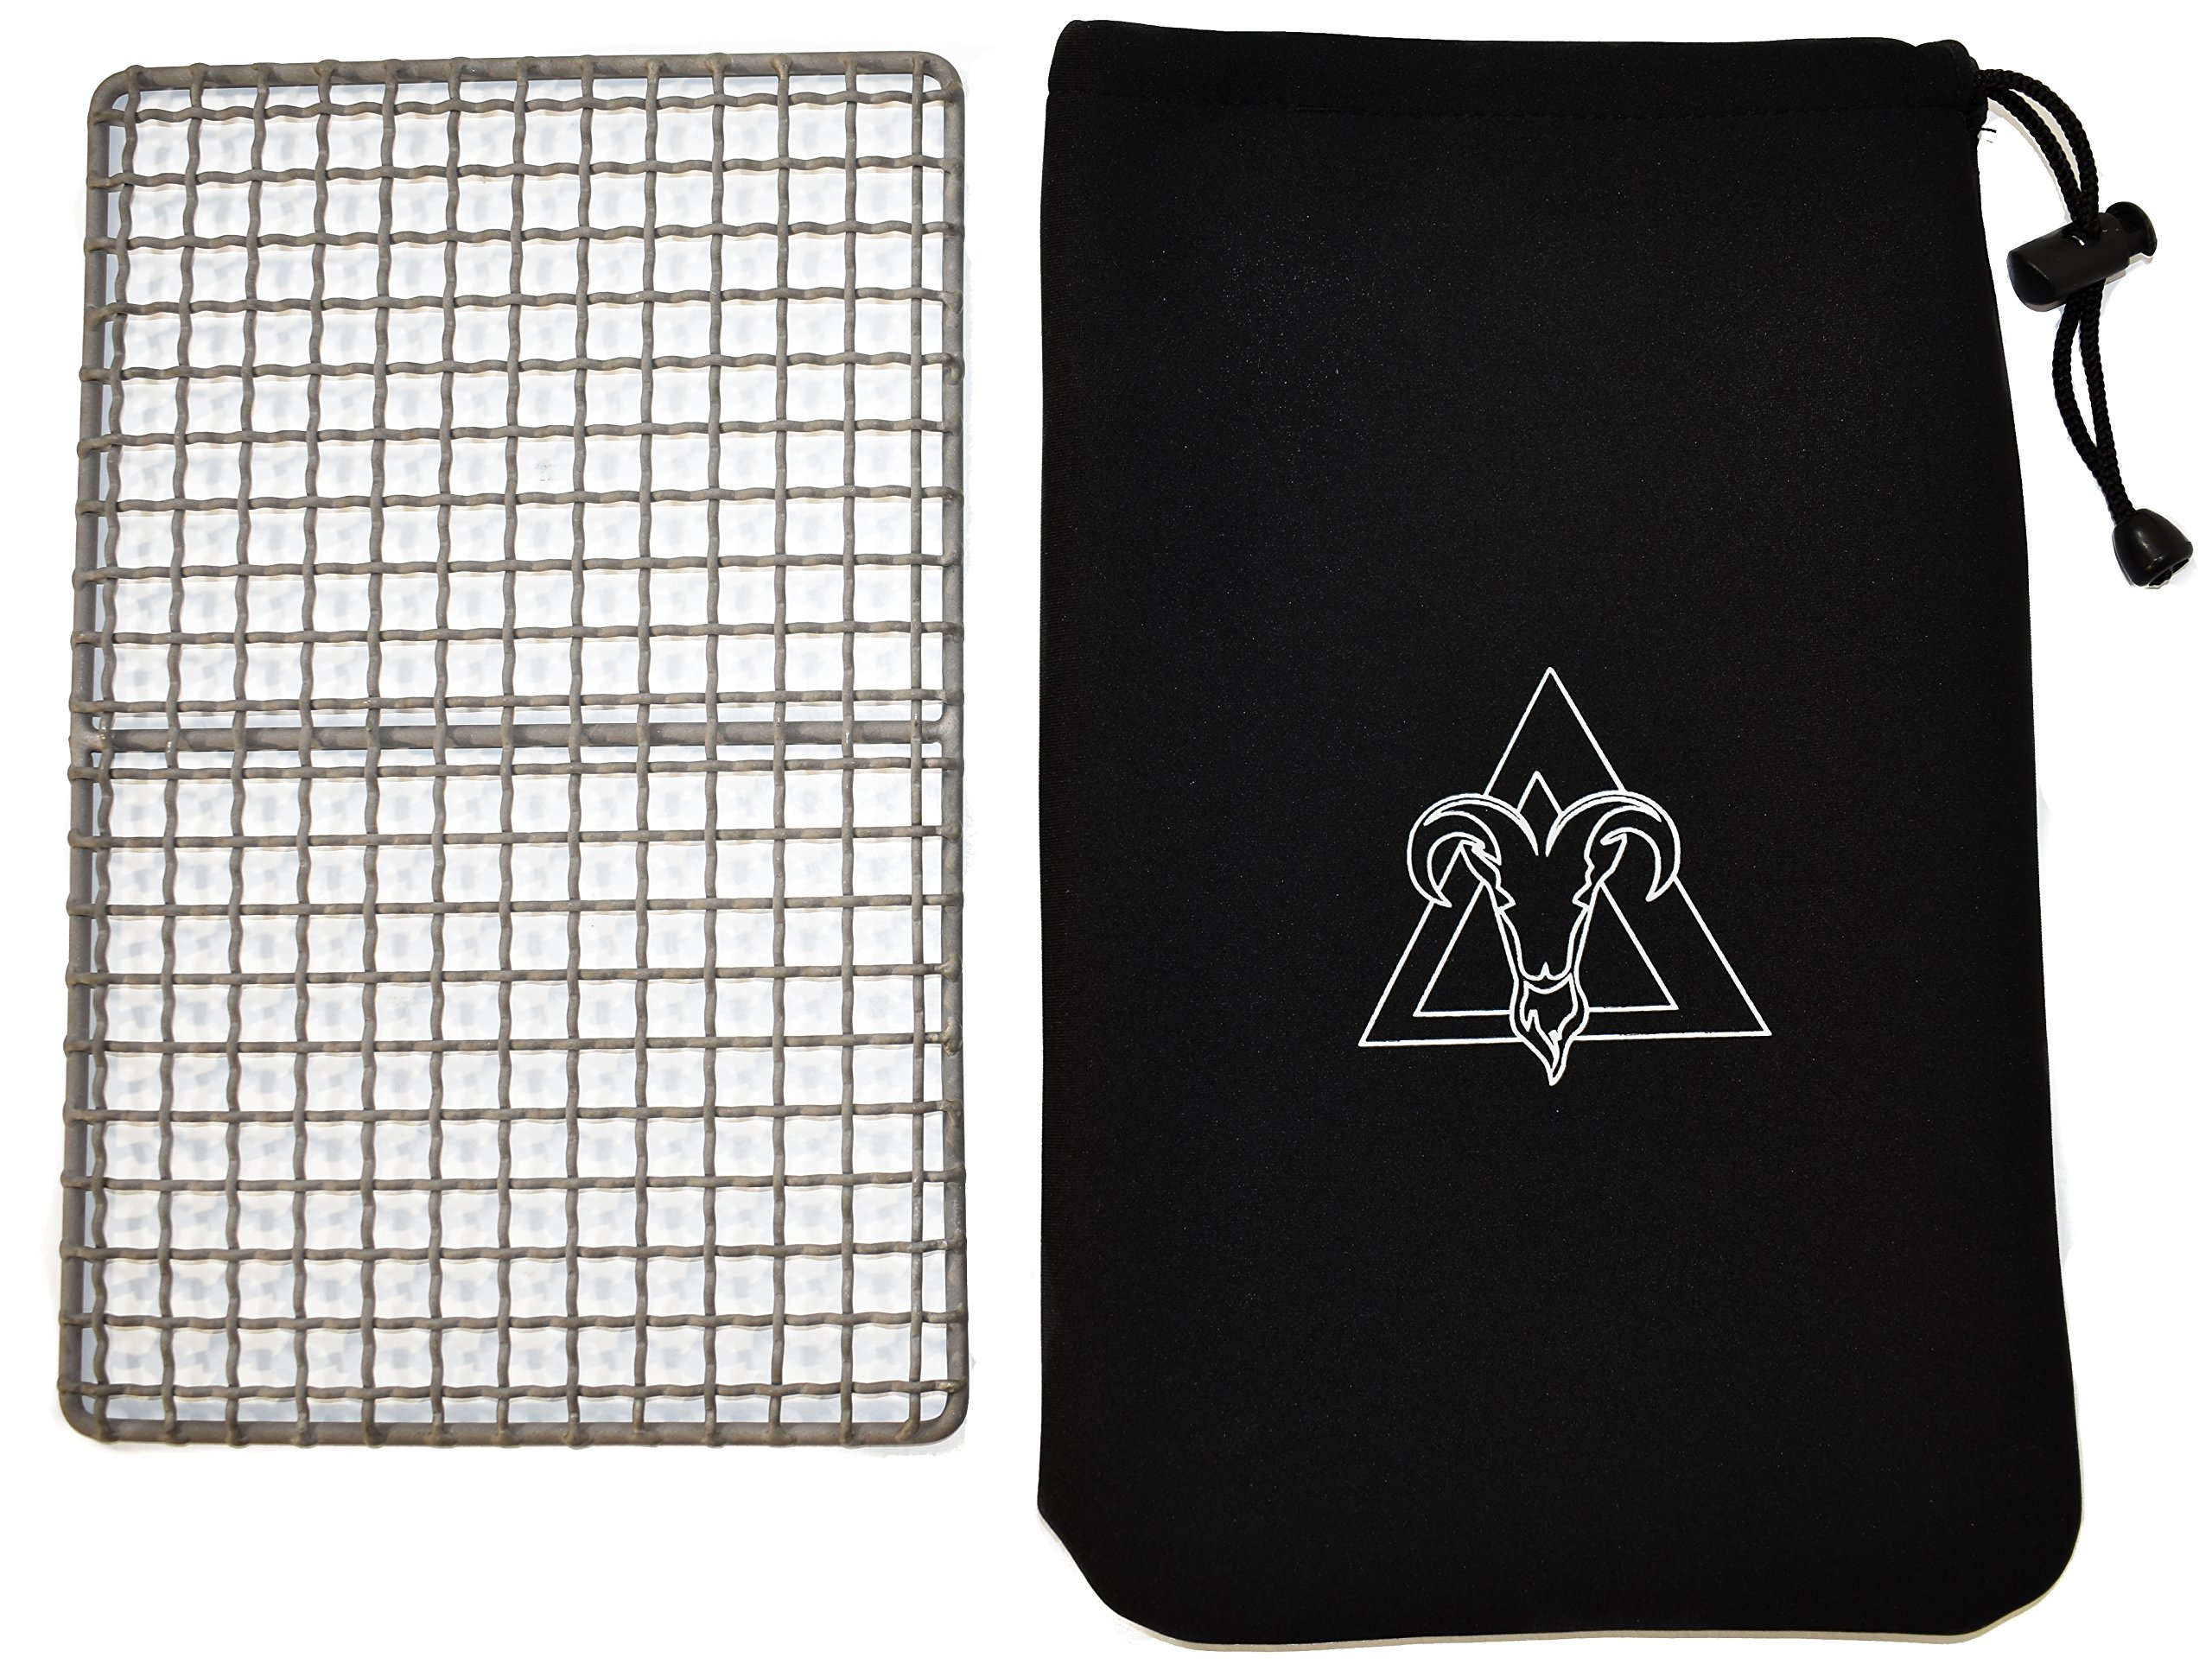 Arcadia Gear TITANIUM | The Woodsman Grill | Pure Titanium Back Country Camp Fire Cooking Grate And Neoprene Pouch Designed For When Your Life Depends On It